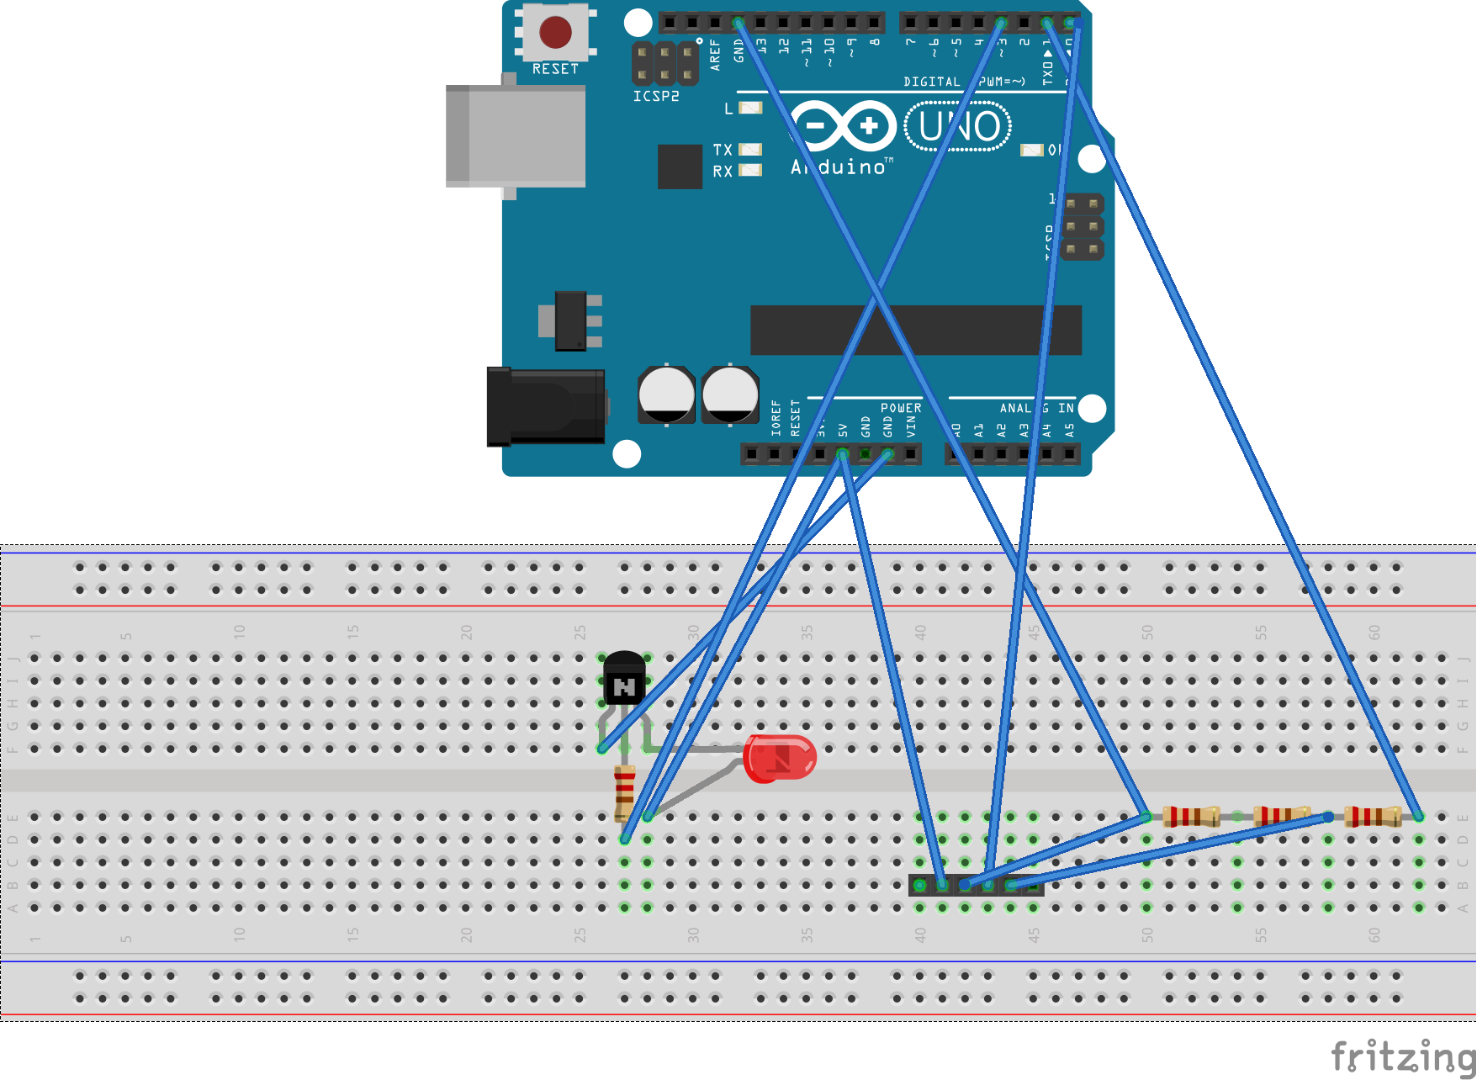 Picture of Circuit (Please Ignore Resistance Values in Fritzing Image)